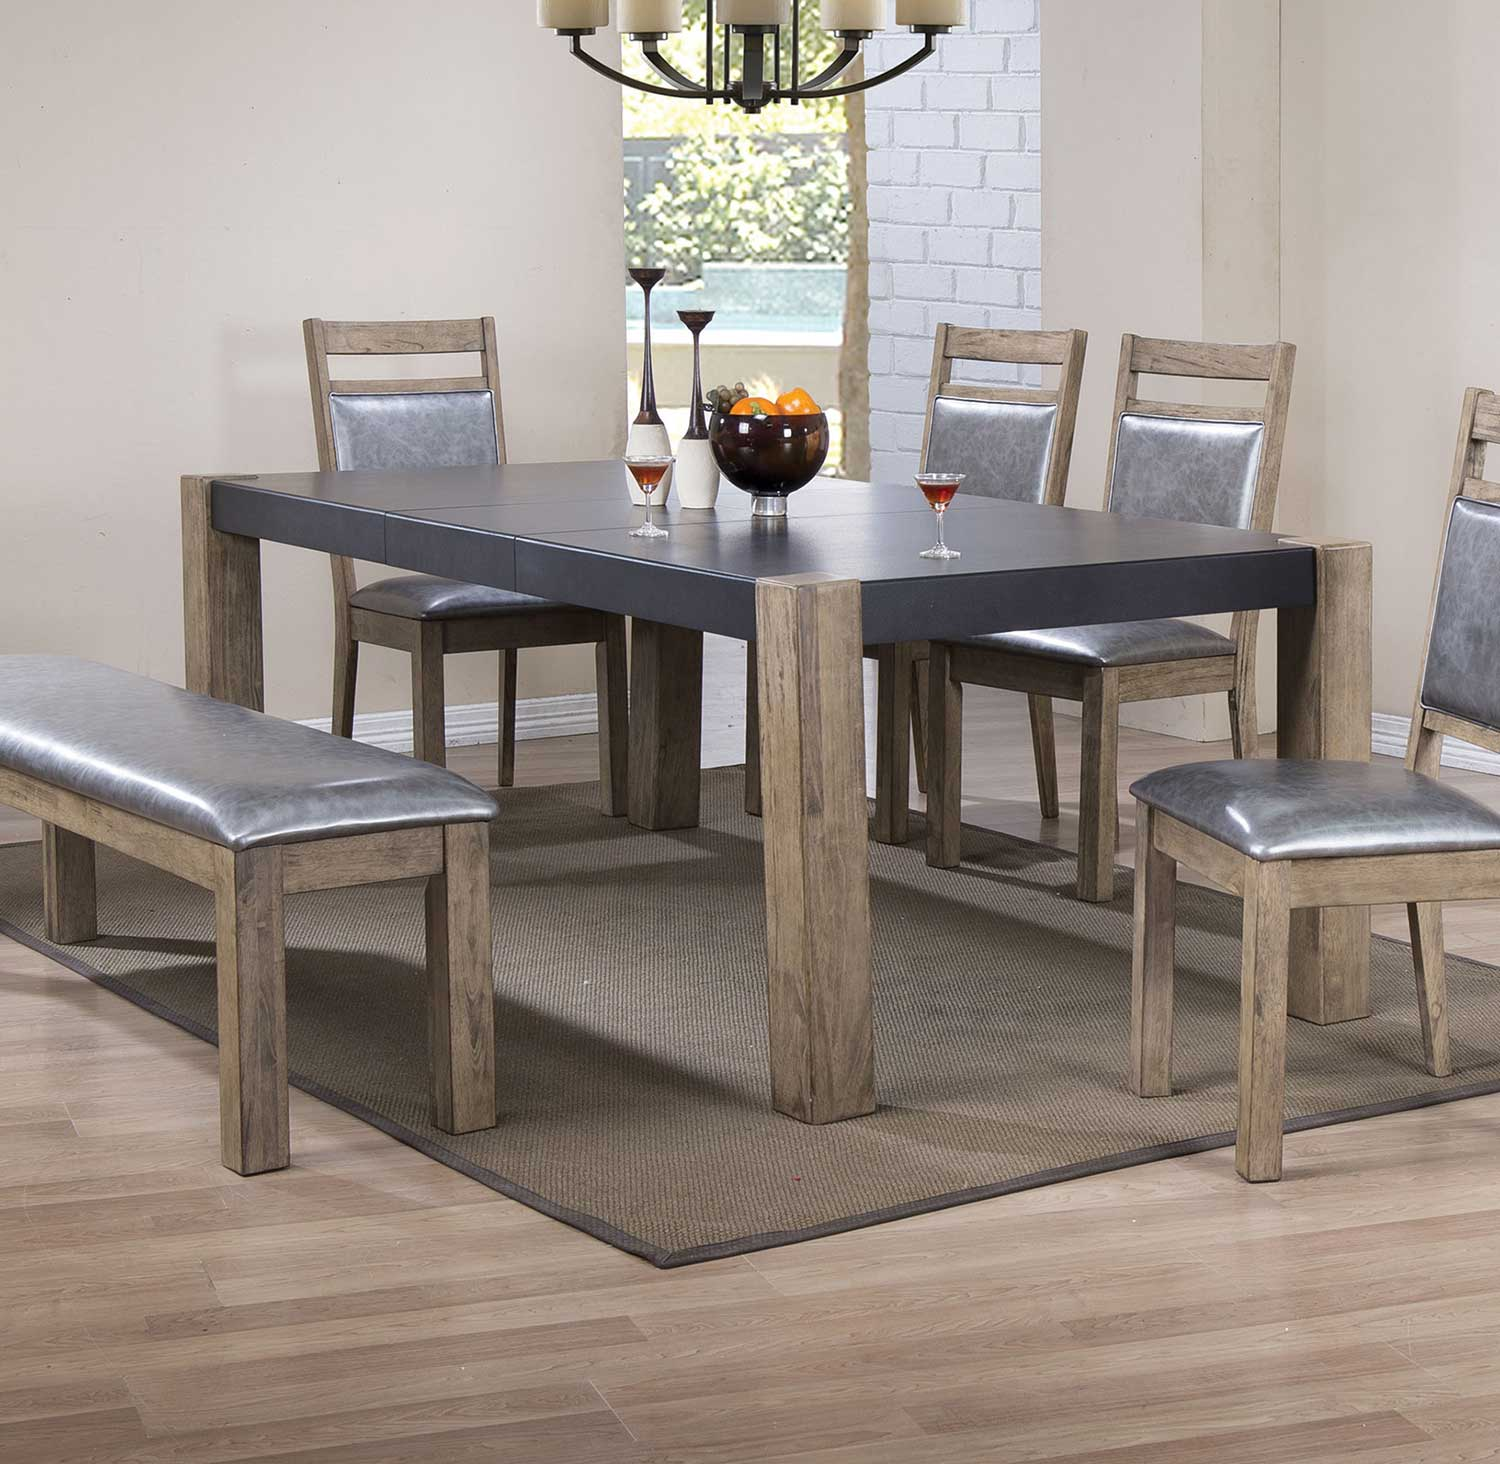 Coaster Lexton 101561 Rectangular Dining Table With 18: Coaster Ludolf Rectangular Dining Table With Leaf